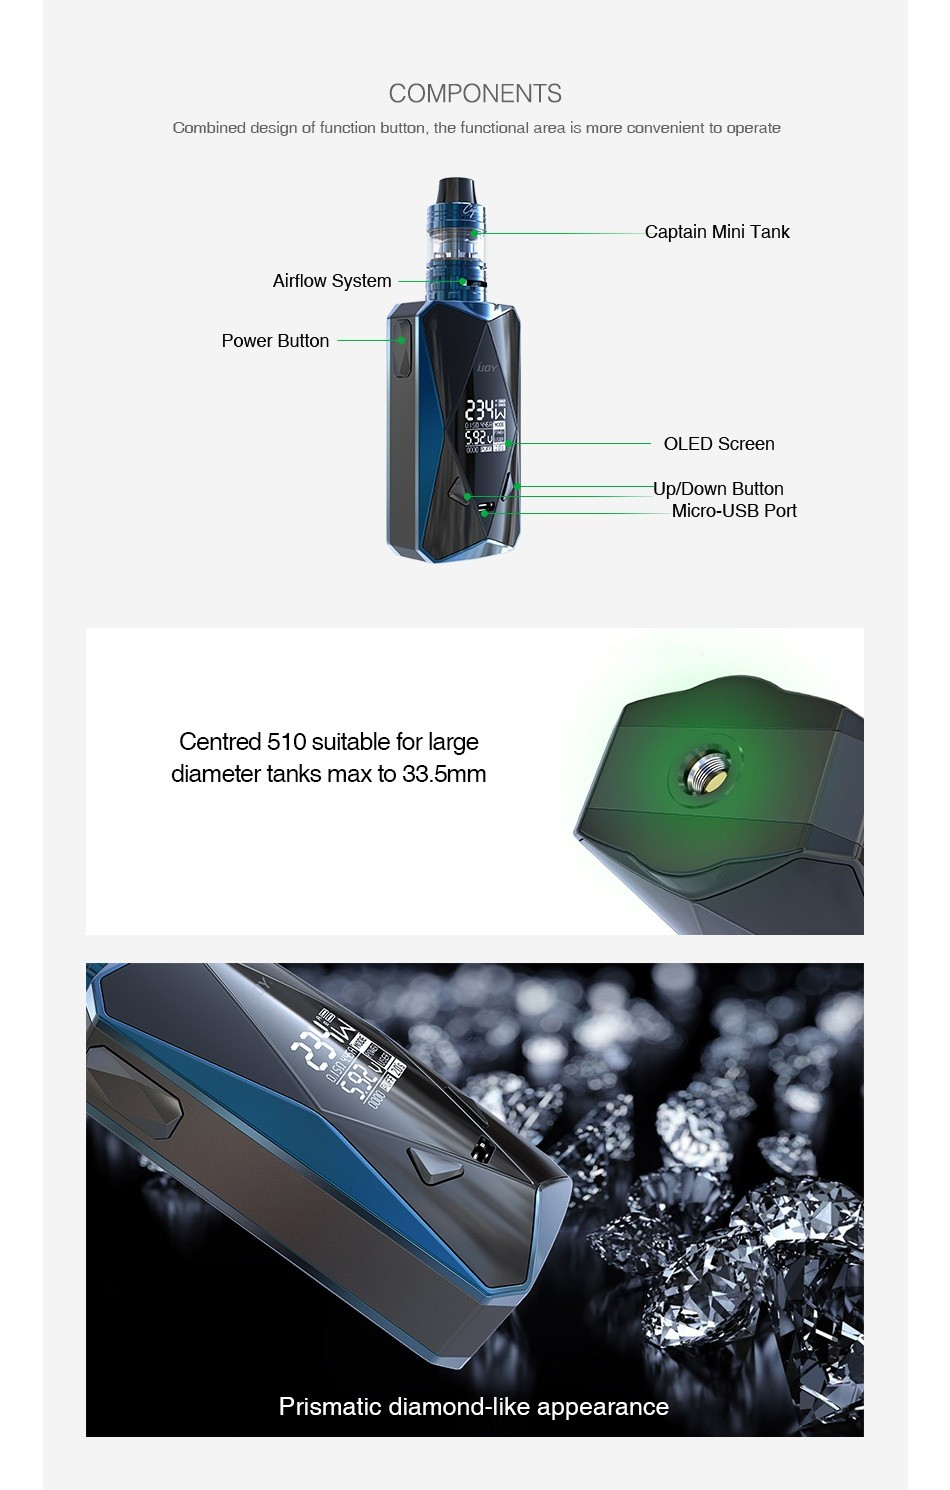 IJOY Diamond PD270 234W TC Kit with Captain Mini 6000mAh COMPONENTS Combined design of function button  the functional area is more convenient to operate Captain mini Tank Airflow System Power button LED Scree Up Down Button Micro USB Port Centred 510 suitable for large diameter tanks max to 33  5mm Prismatic diamond like appearance